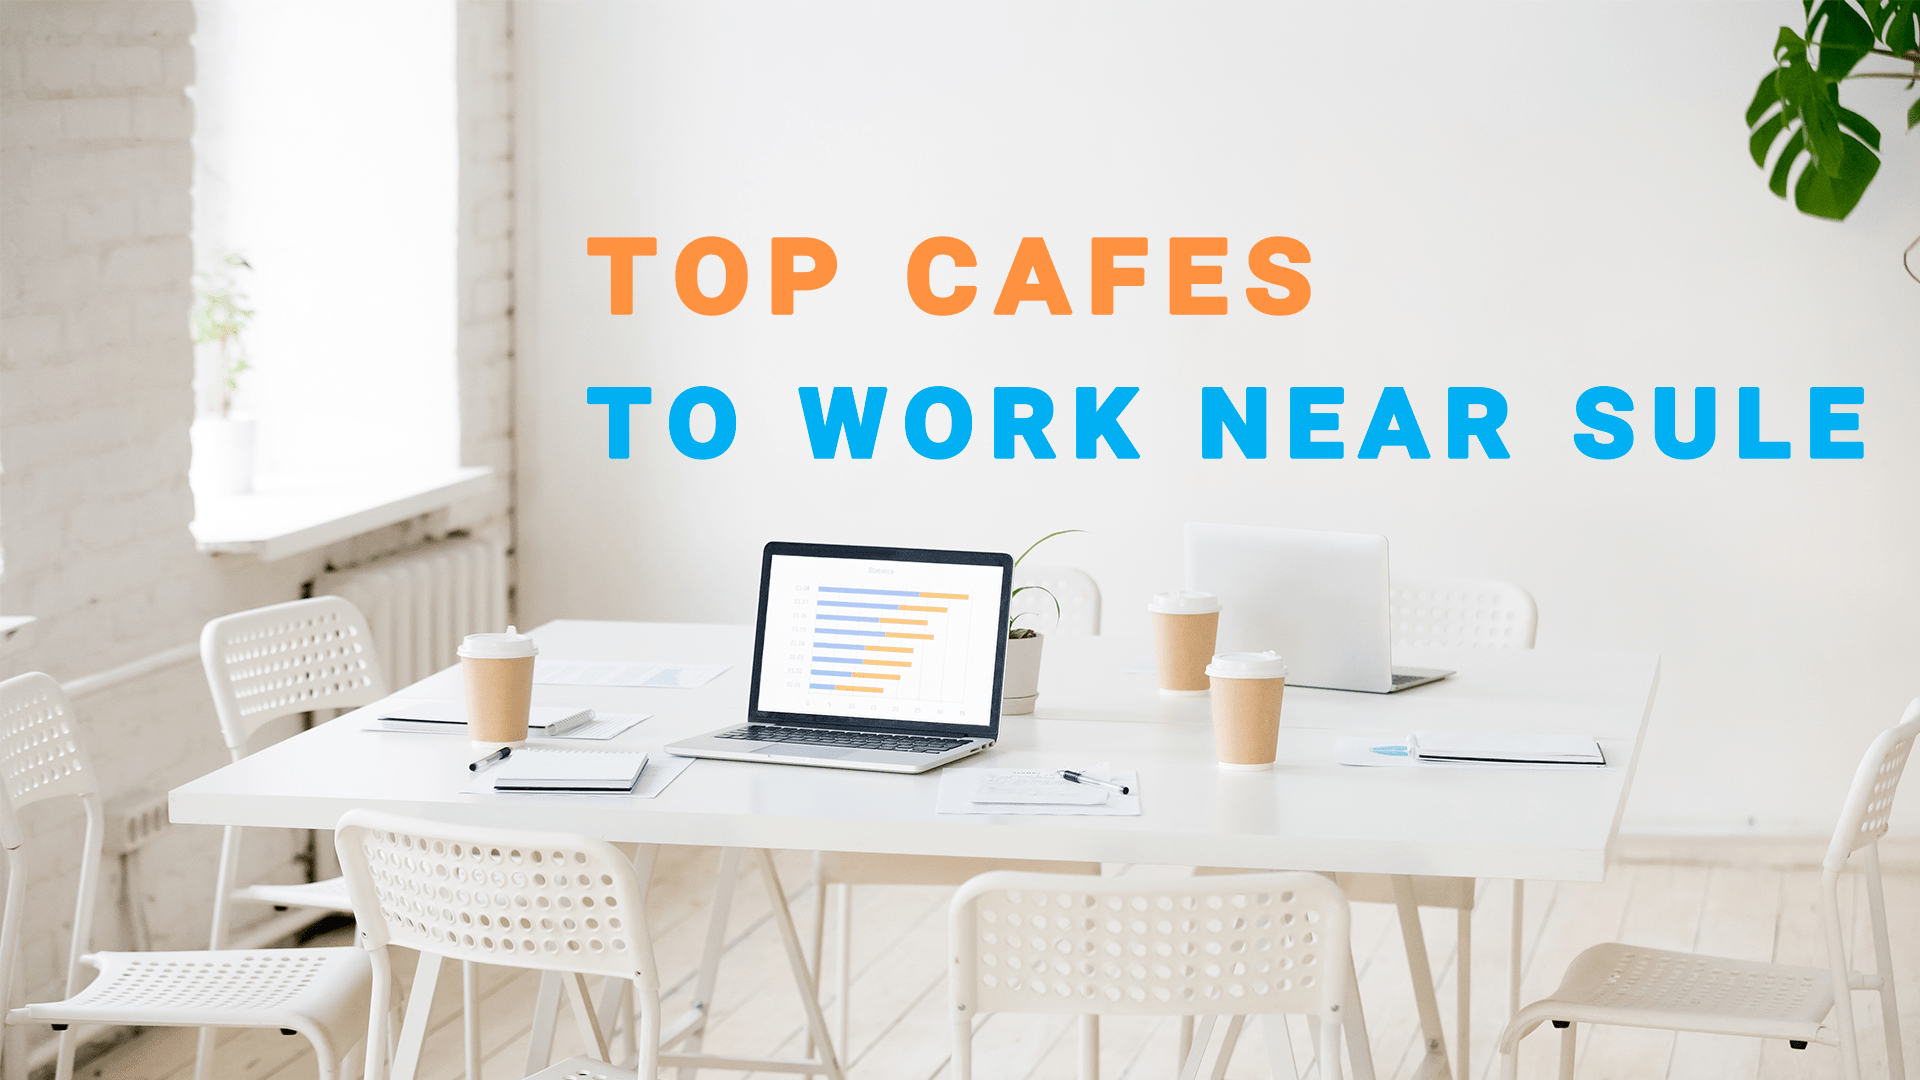 Top 5 Cafés To Work Near Sule | Blog from New Day Jobs